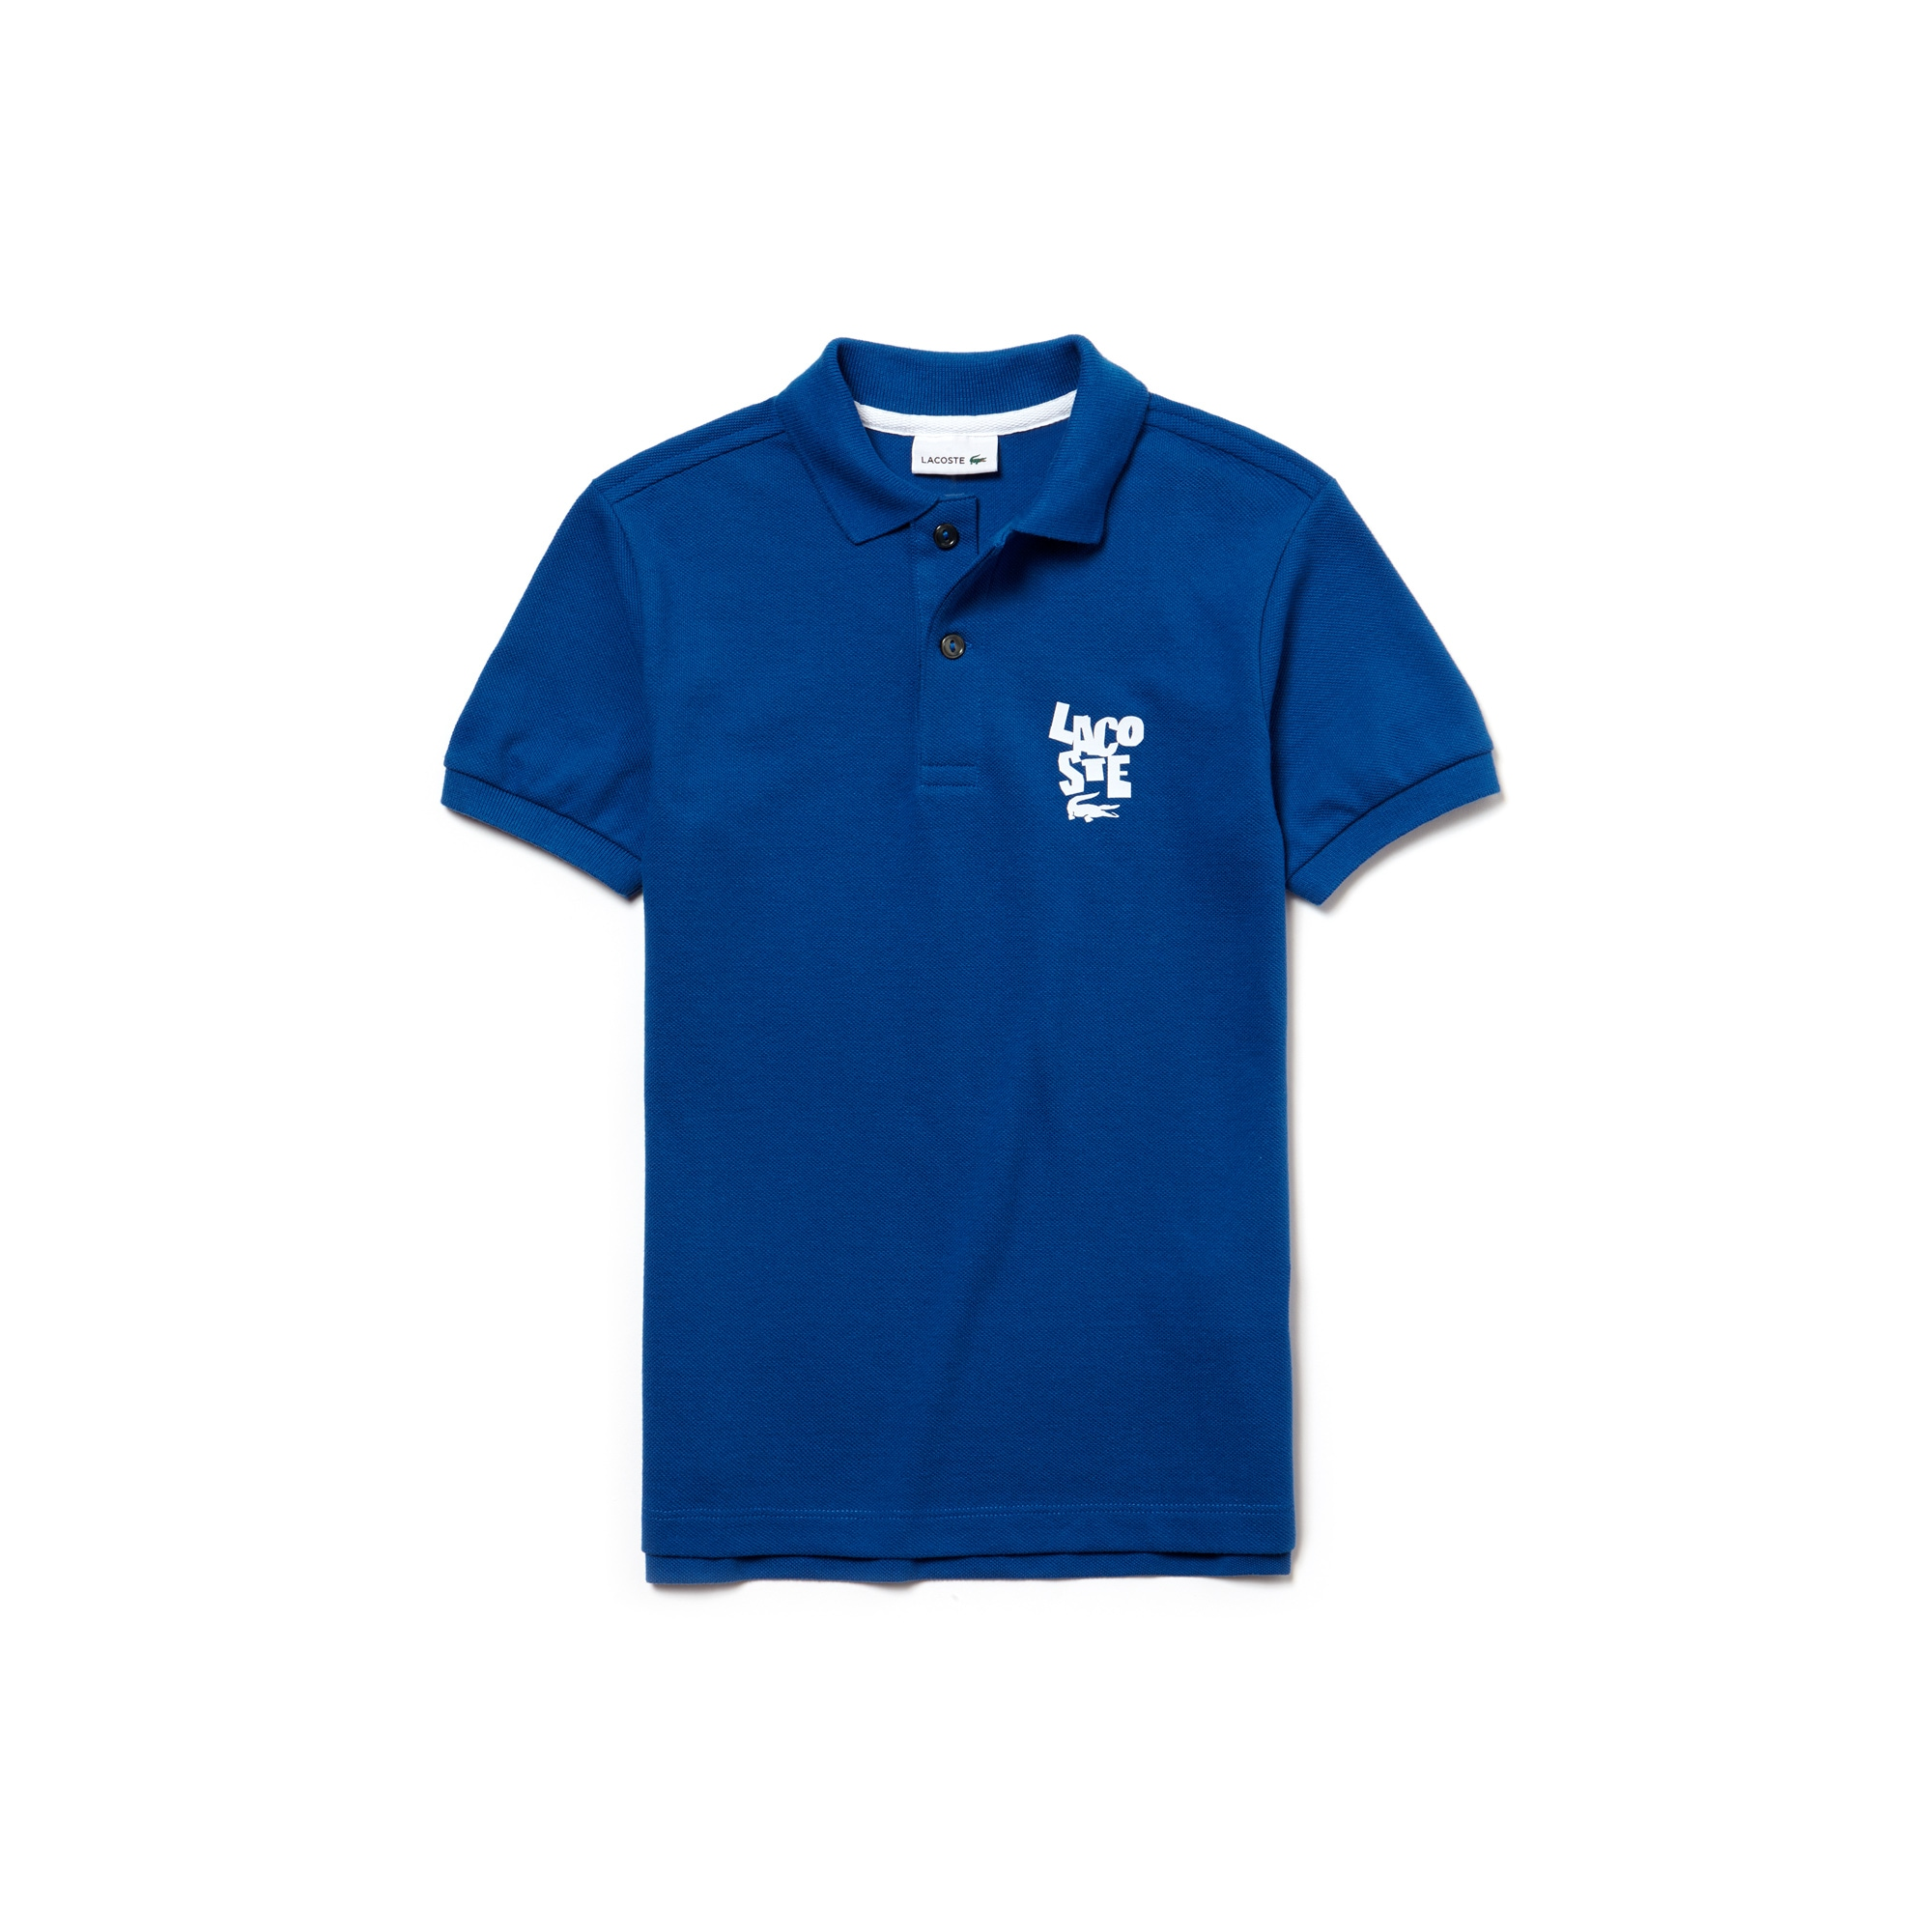 Boys' Lacoste Lettering Cotton Petit Piqué Polo Shirt